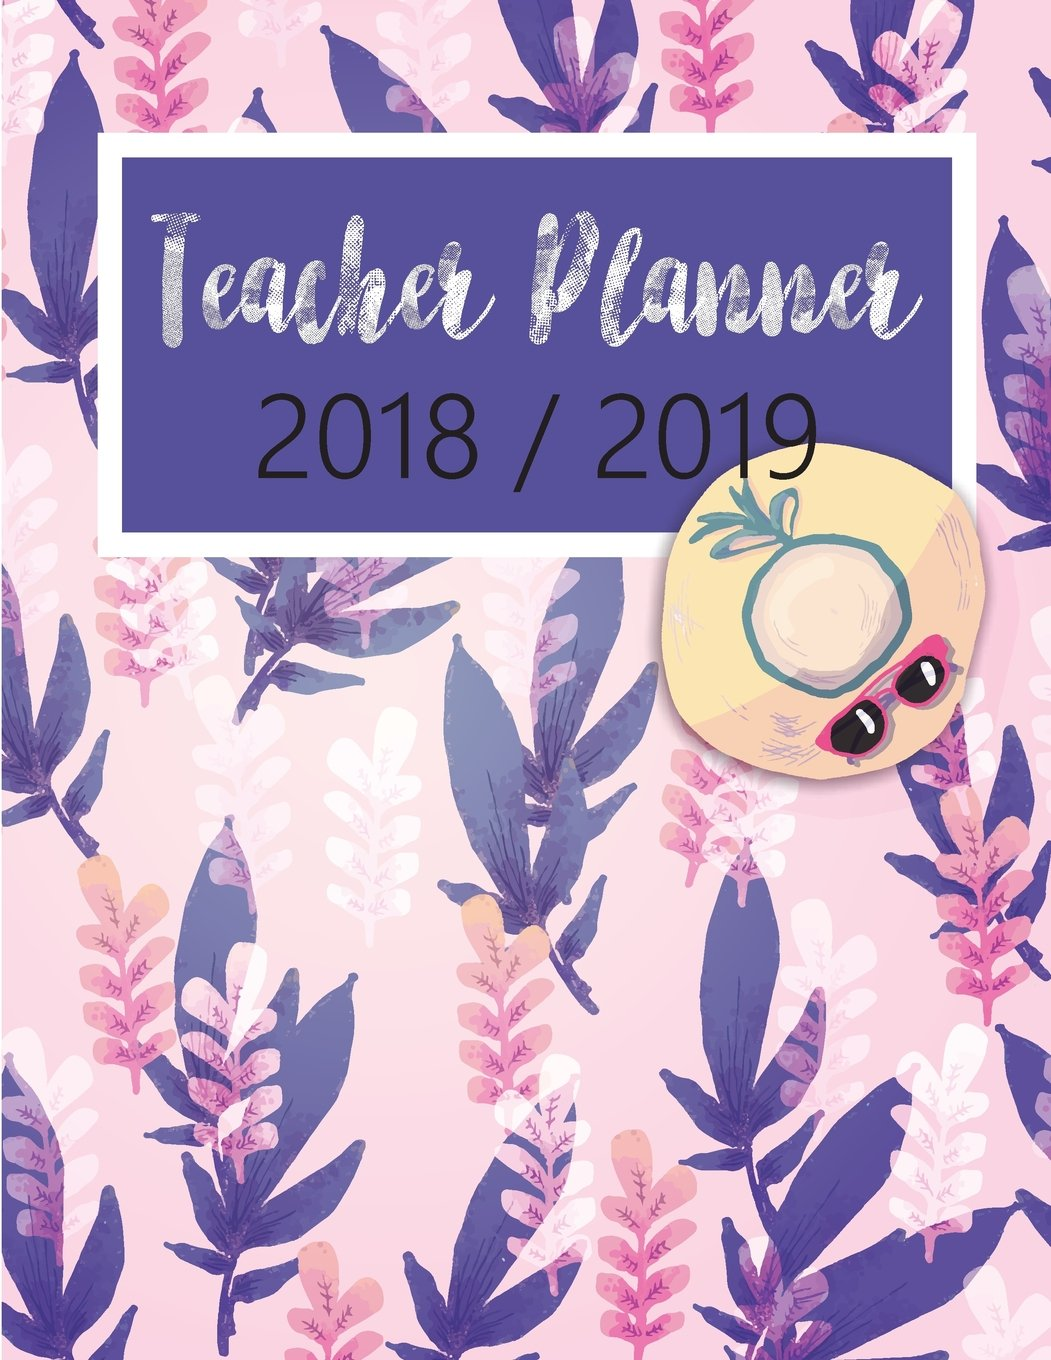 2018   2019 Teacher Planner  Teacher Academic Planner Lesson Planner Classroom Roster Goal Setting Yearly Monthly Weekly Daily Scheduling Undated ... And Weekly Calendar  Plan Book Diary Band 4